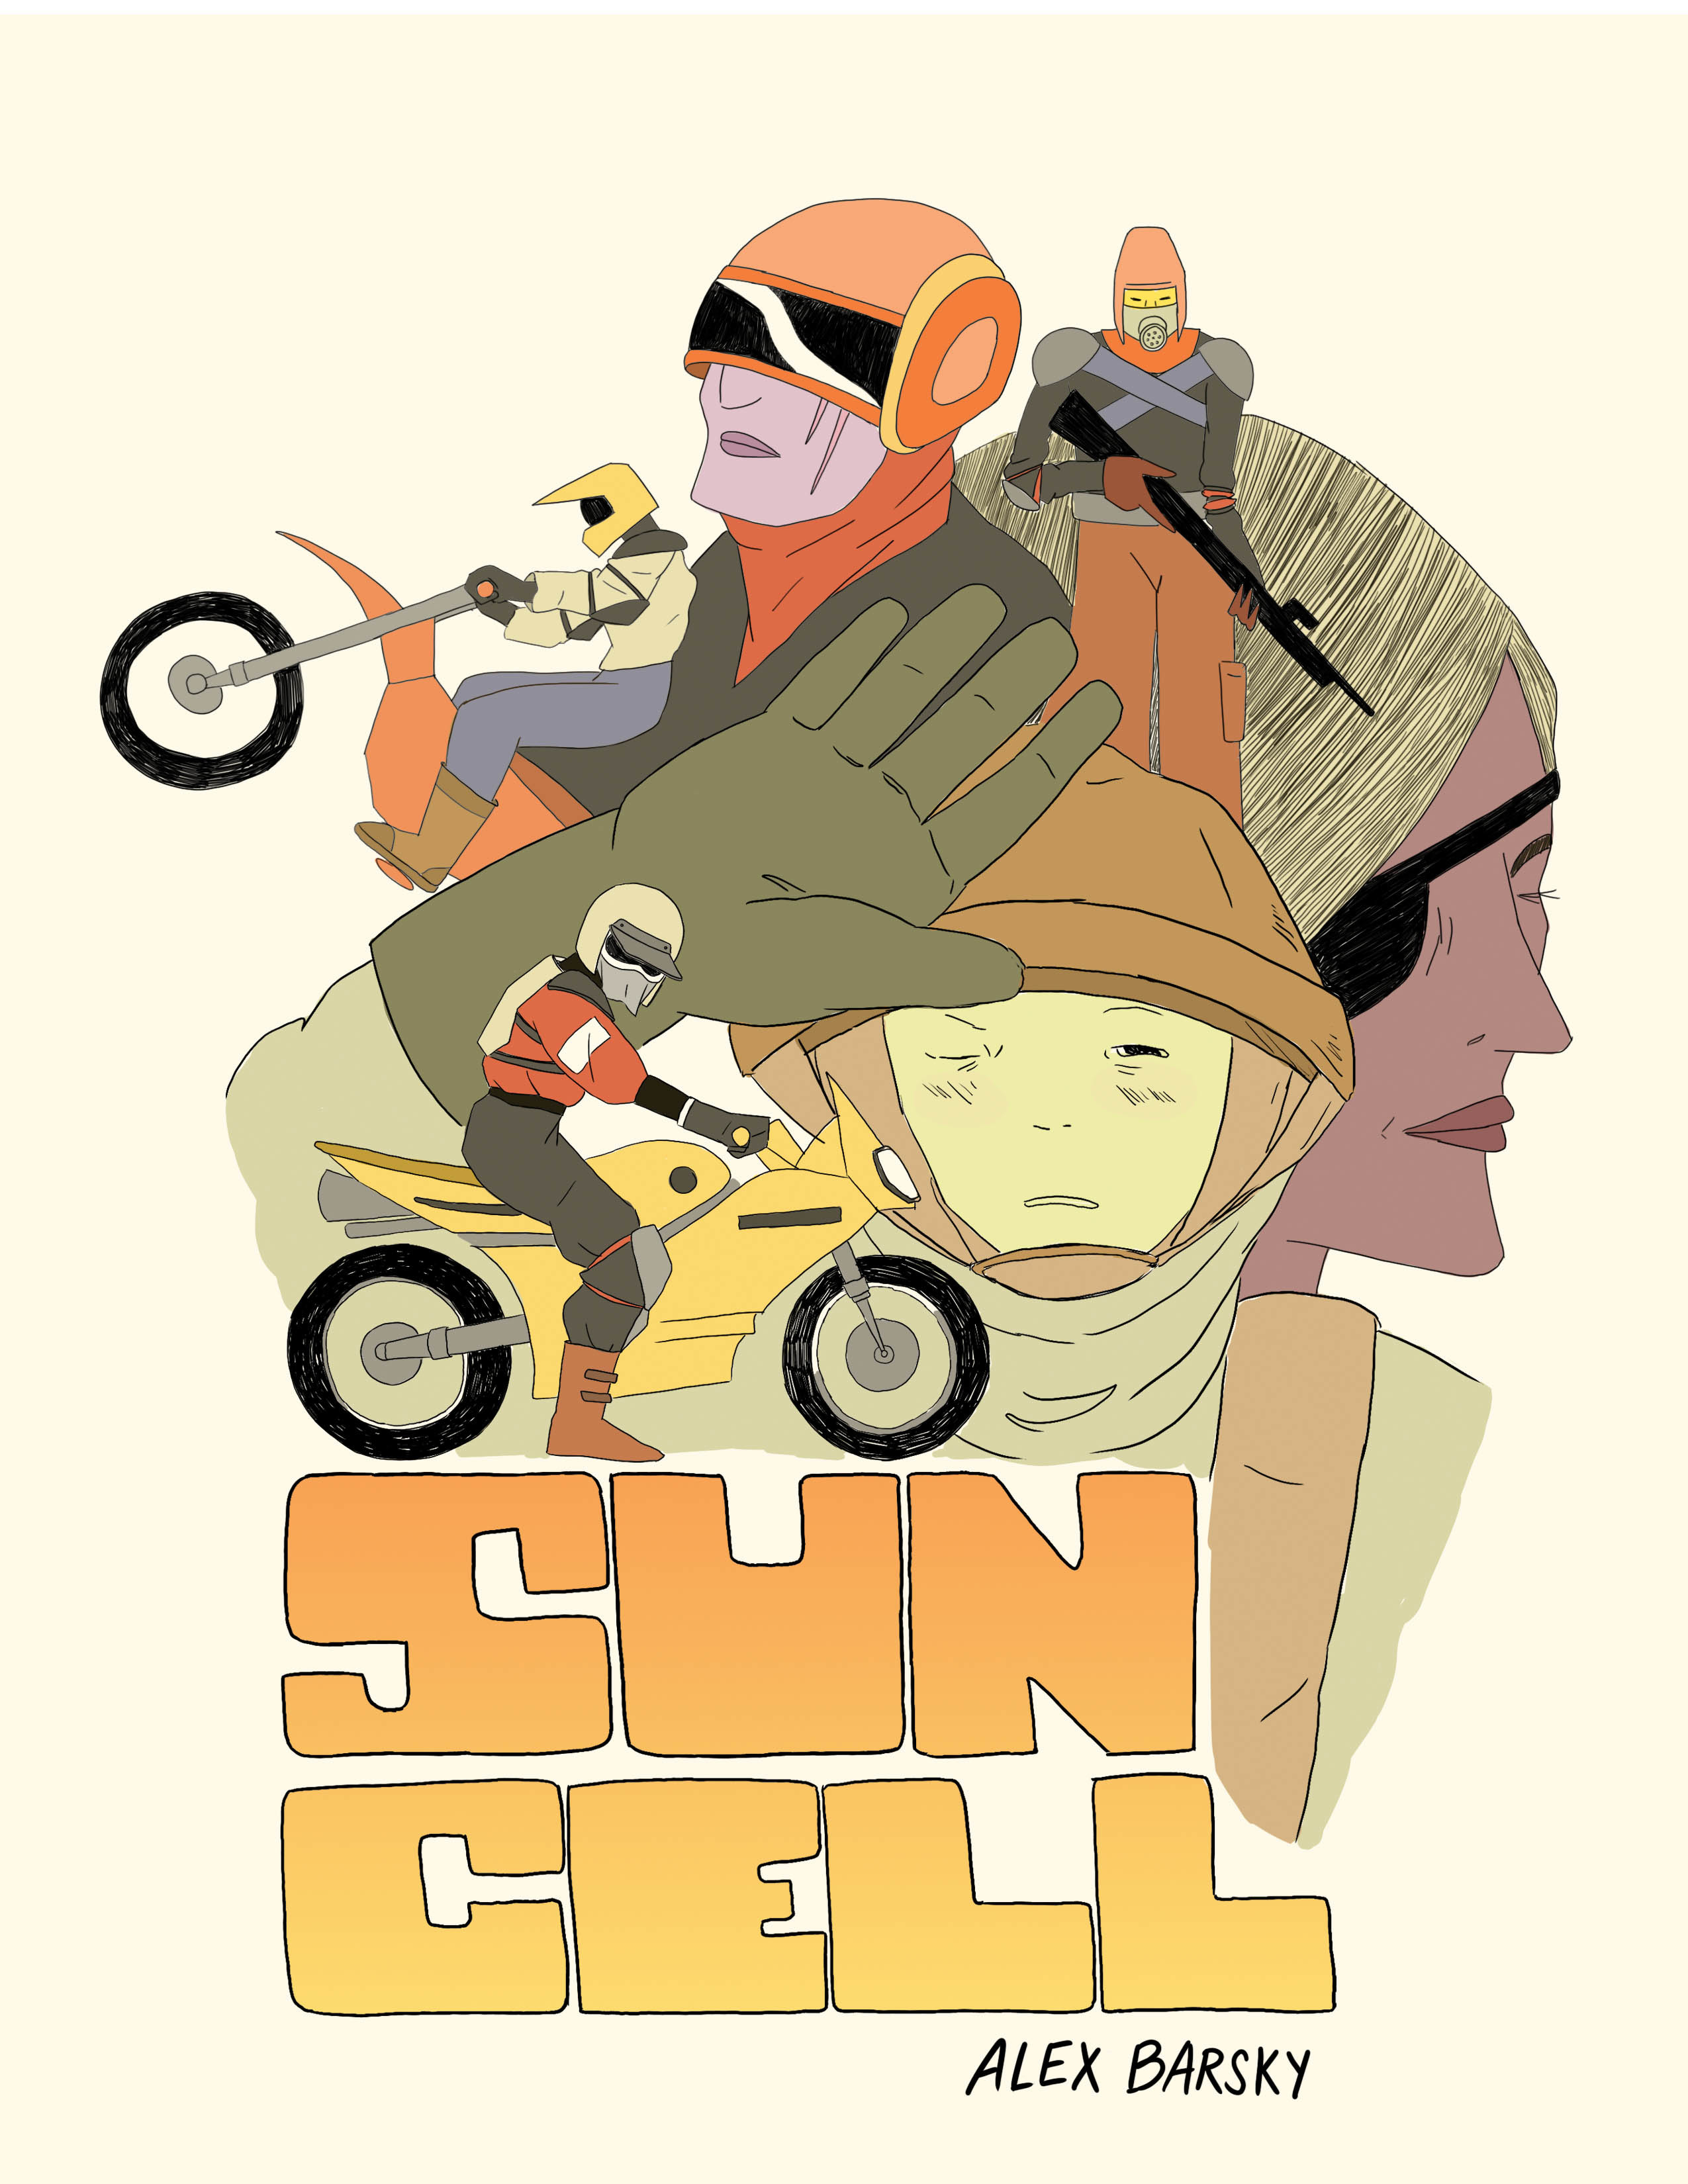 """A cartoon of a few people on dirt bikes, a person with a gun, a woman with an eyepatch, and the words """"Sun Cell"""" and """"Alex Barsky"""""""